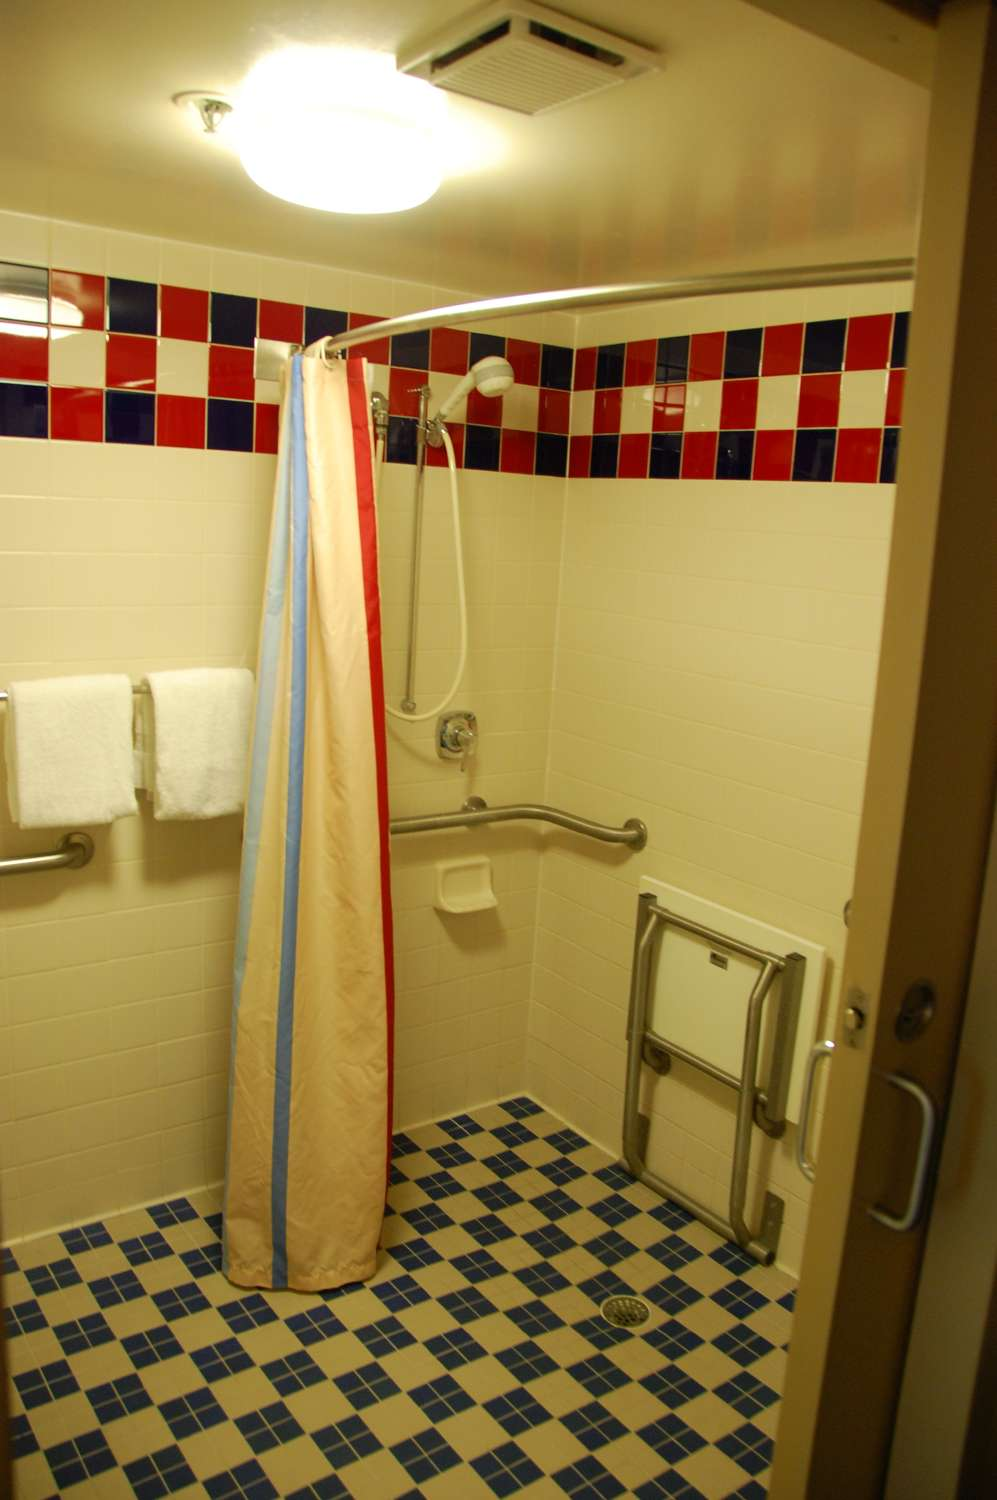 307-All-Star-Sports-Room-Accesible-Room-Roll-In-Shower.JPG